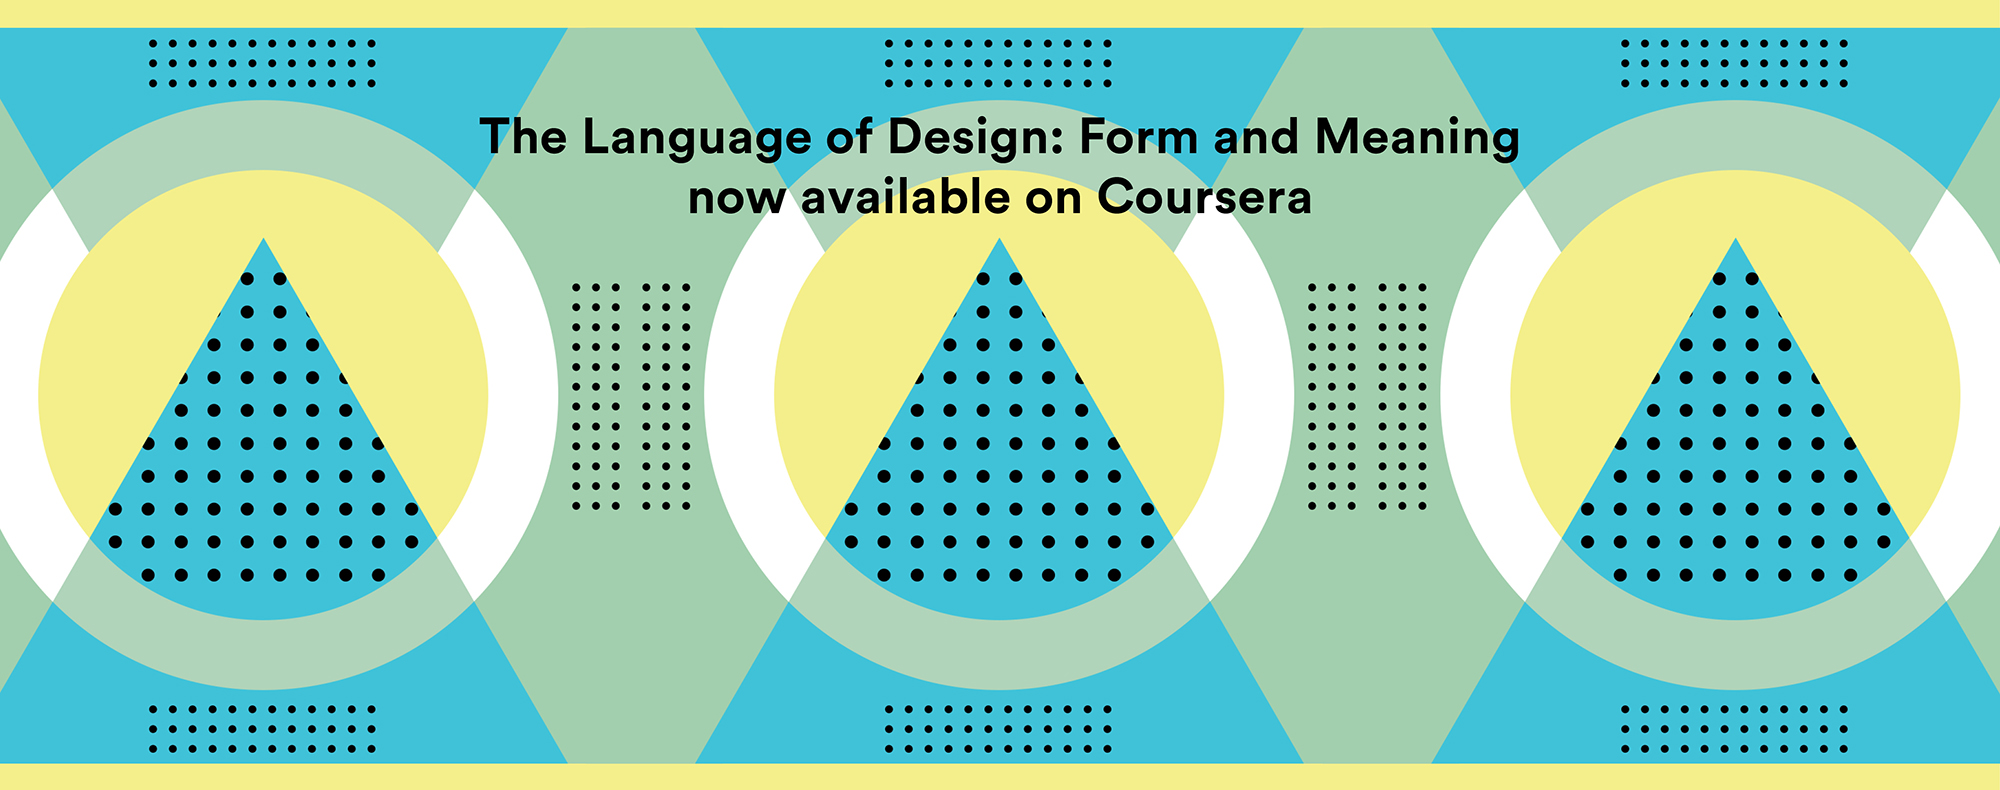 The Language of Design: Form and Meaning